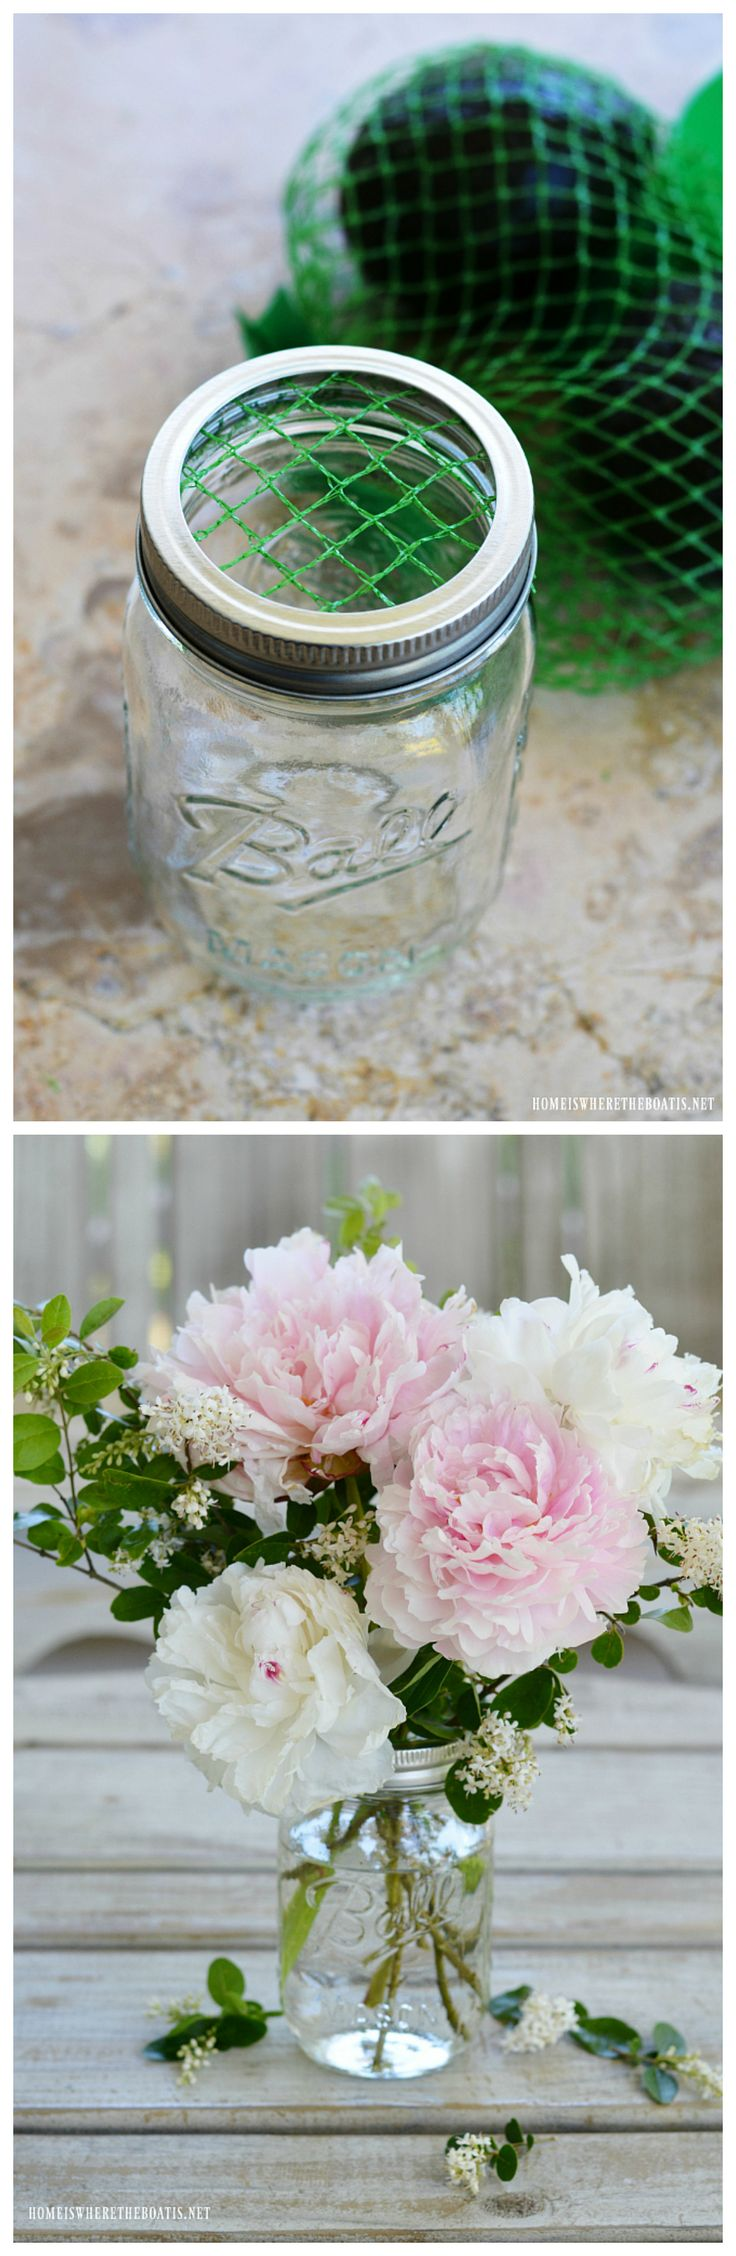 Best 25+ Floral design ideas on Pinterest | Floral arrangements ...